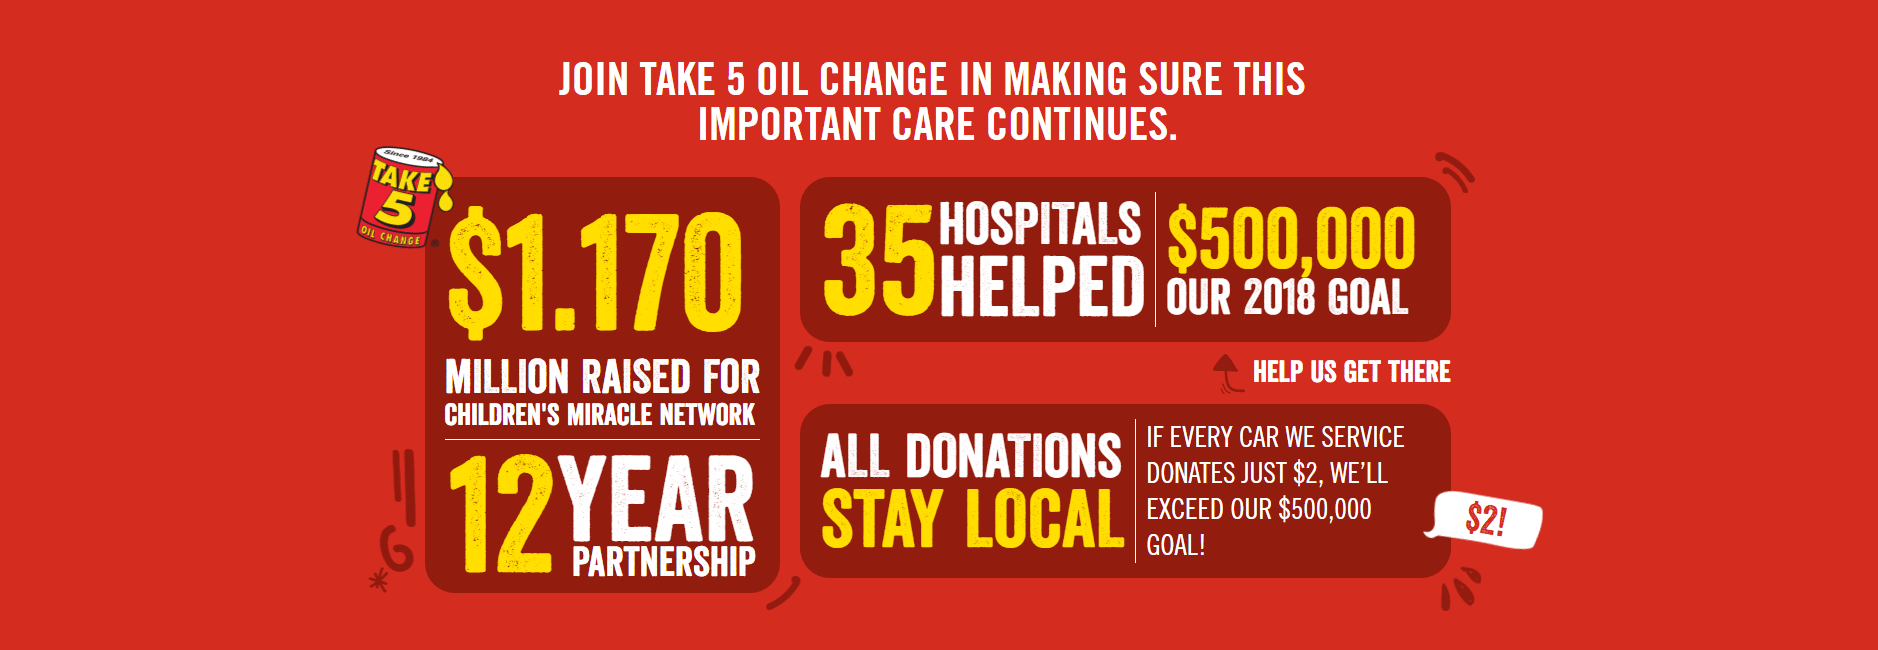 Take 5 to Raise $500,000 One Oil Change at a Time